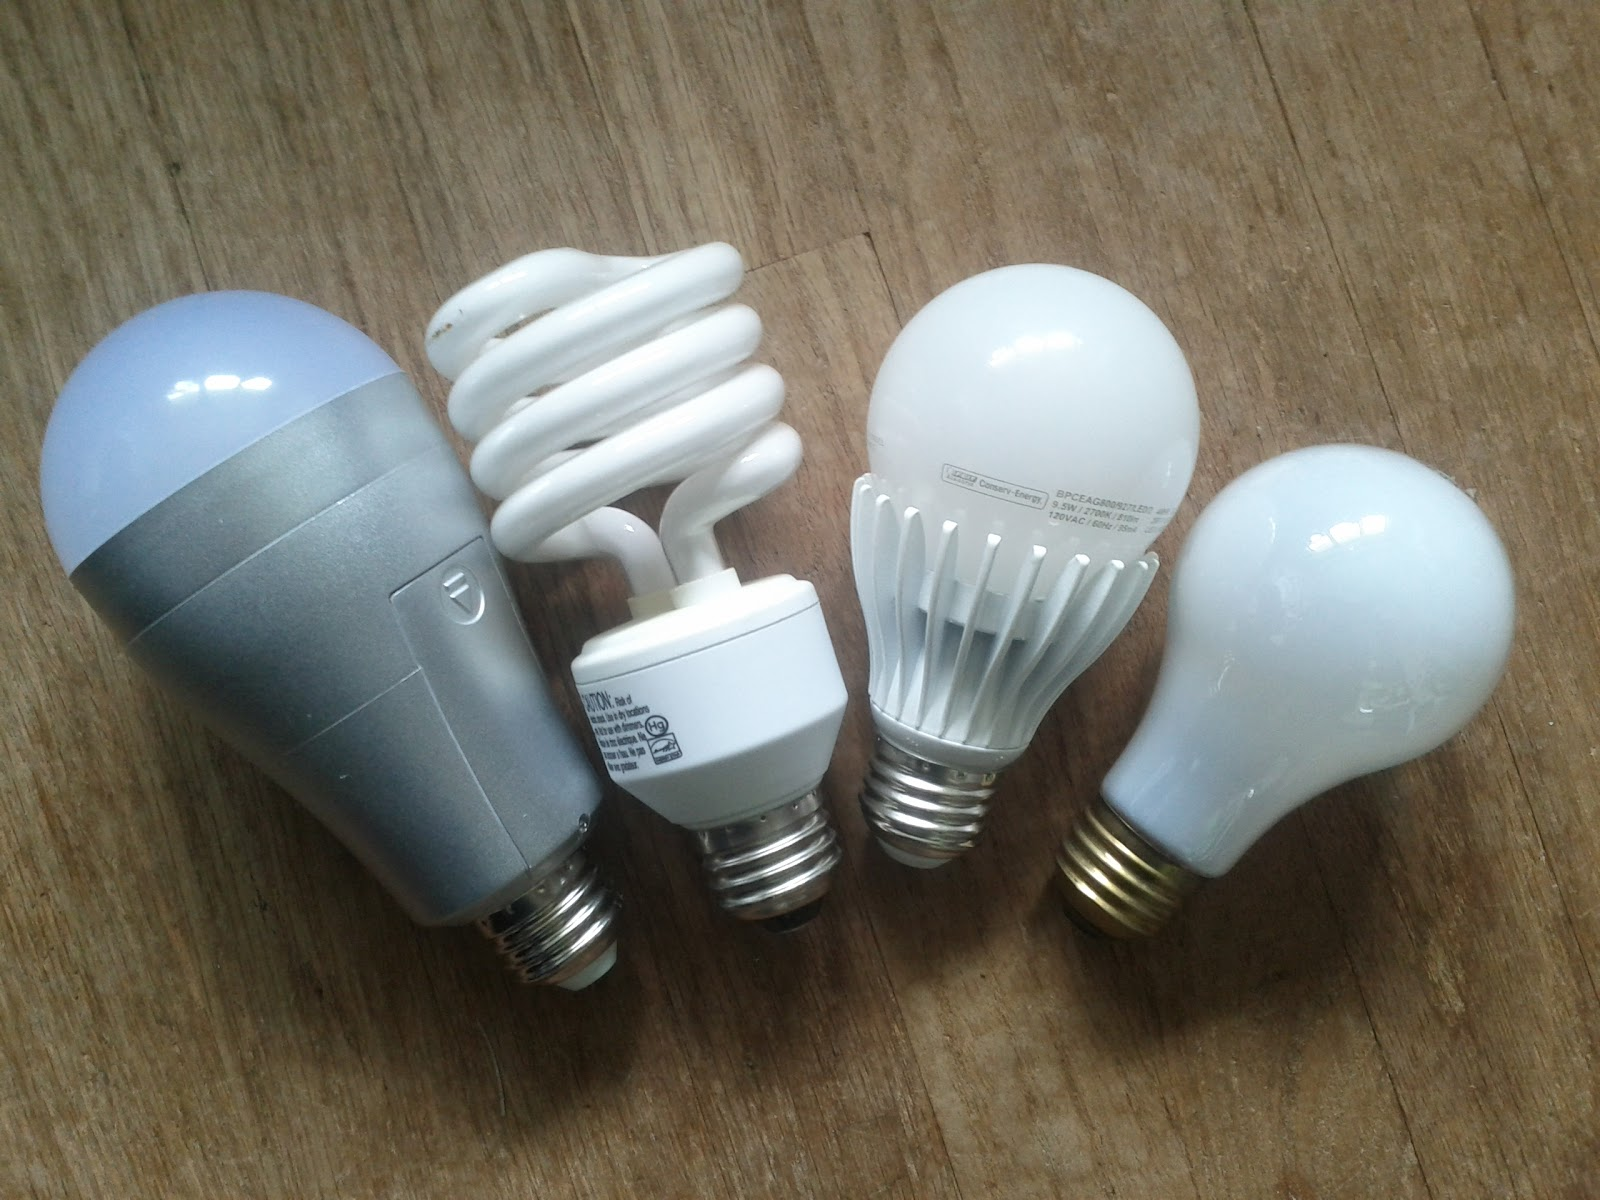 Smartcharge 20 How To Install Uninterruptible Element14 An Incandescent Light Fixture Is Relatively Simple Requiring Only A Img 20160511 143636 Bulb Relative Other Common Bulbs The Weight Of Another Potential